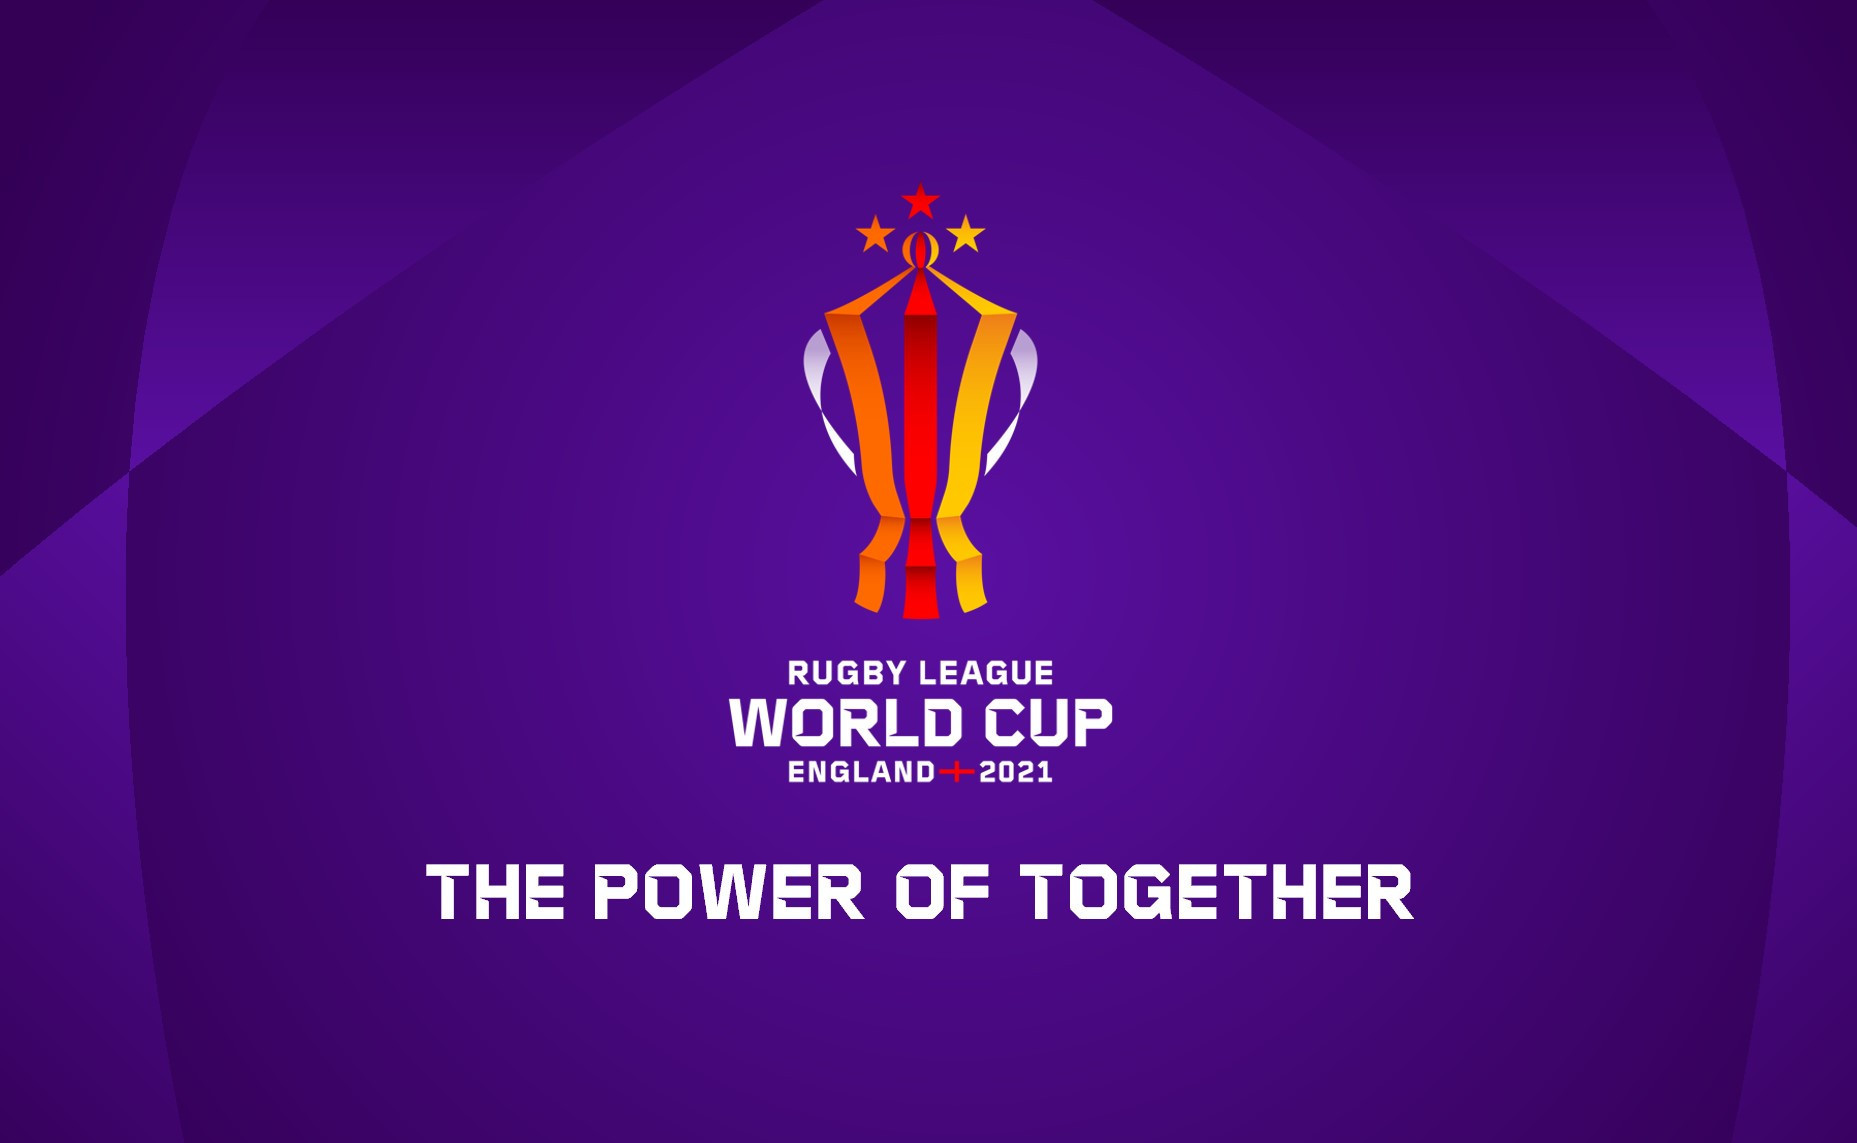 New logo unveiled for 2021 Rugby League World Cup